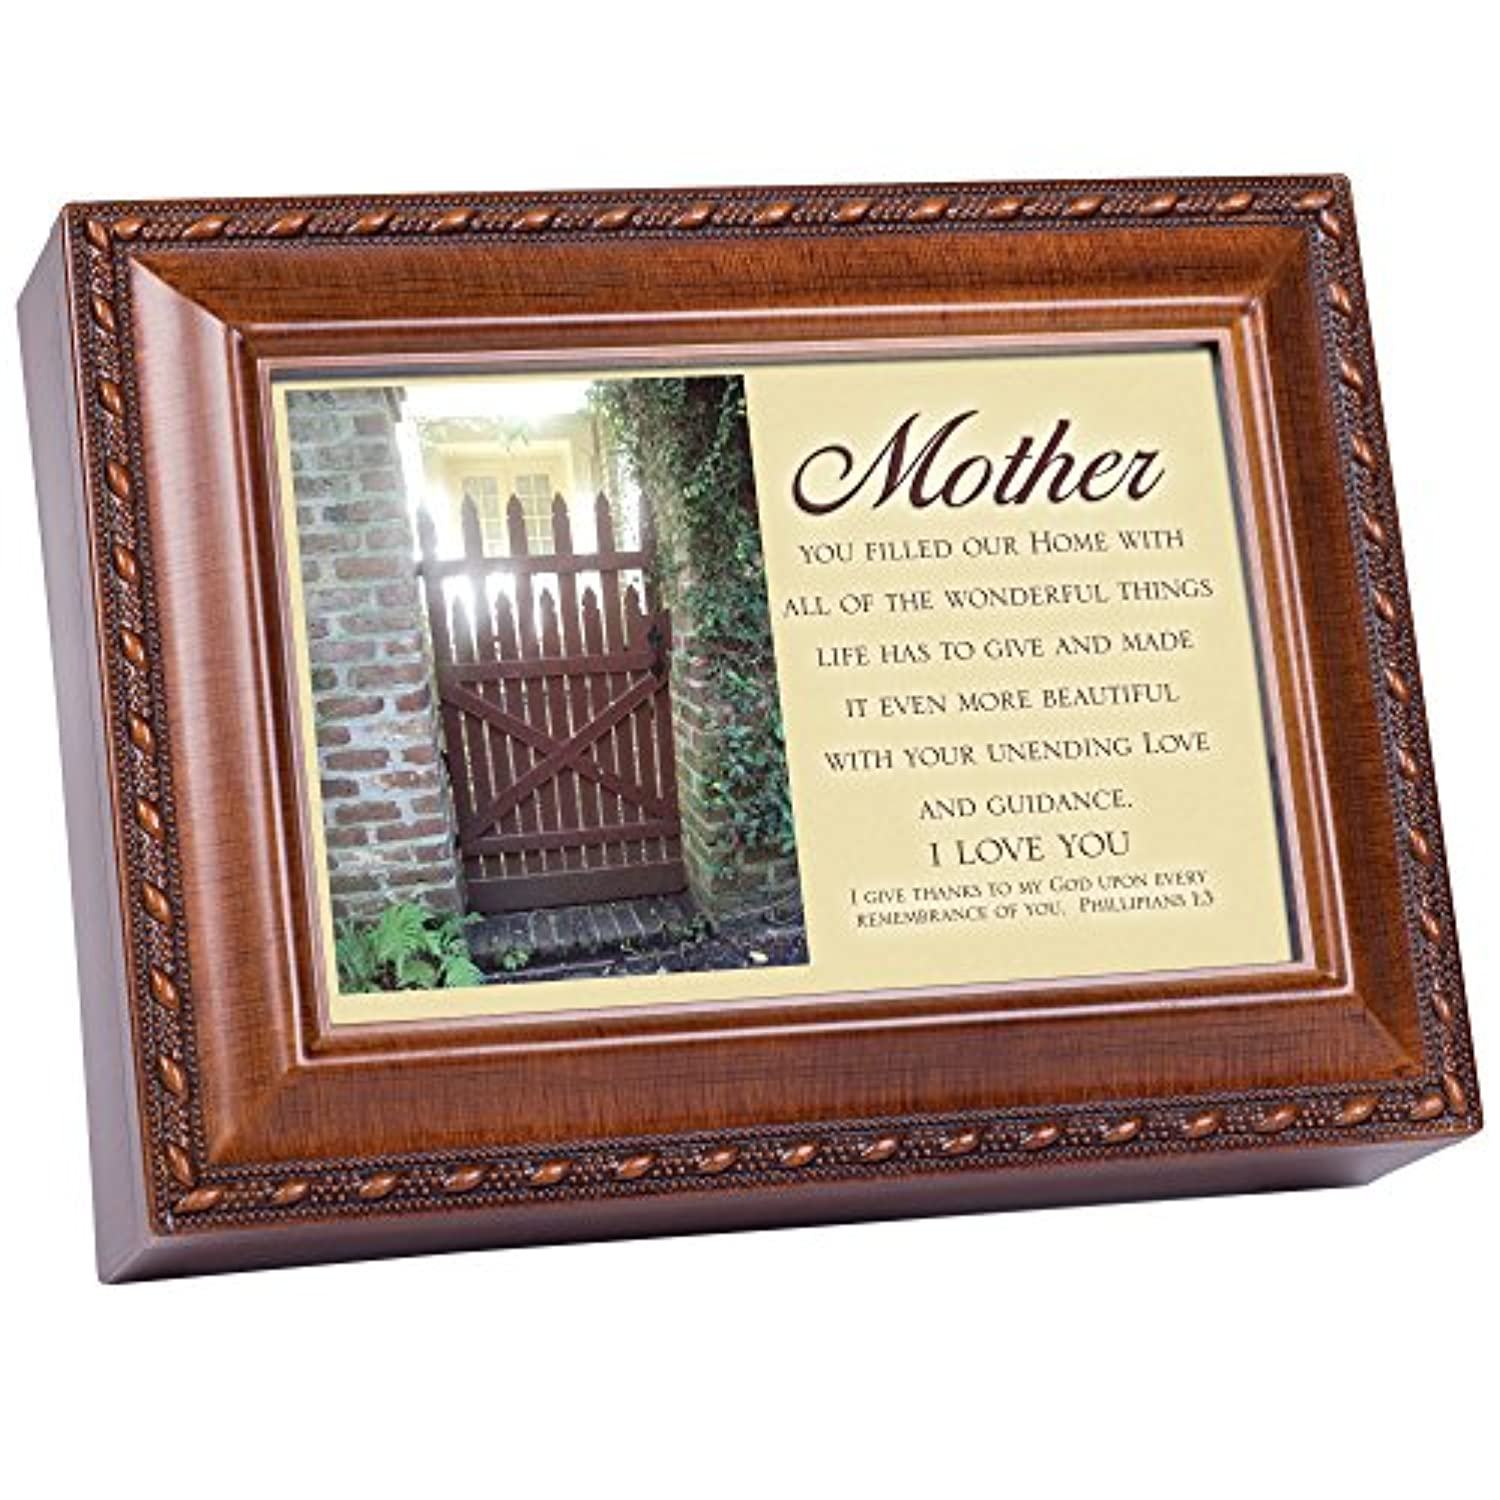 Cottage Garden Mother You Filled Woodgrain Music Box / Jewellery Box Plays How Great Thou Art